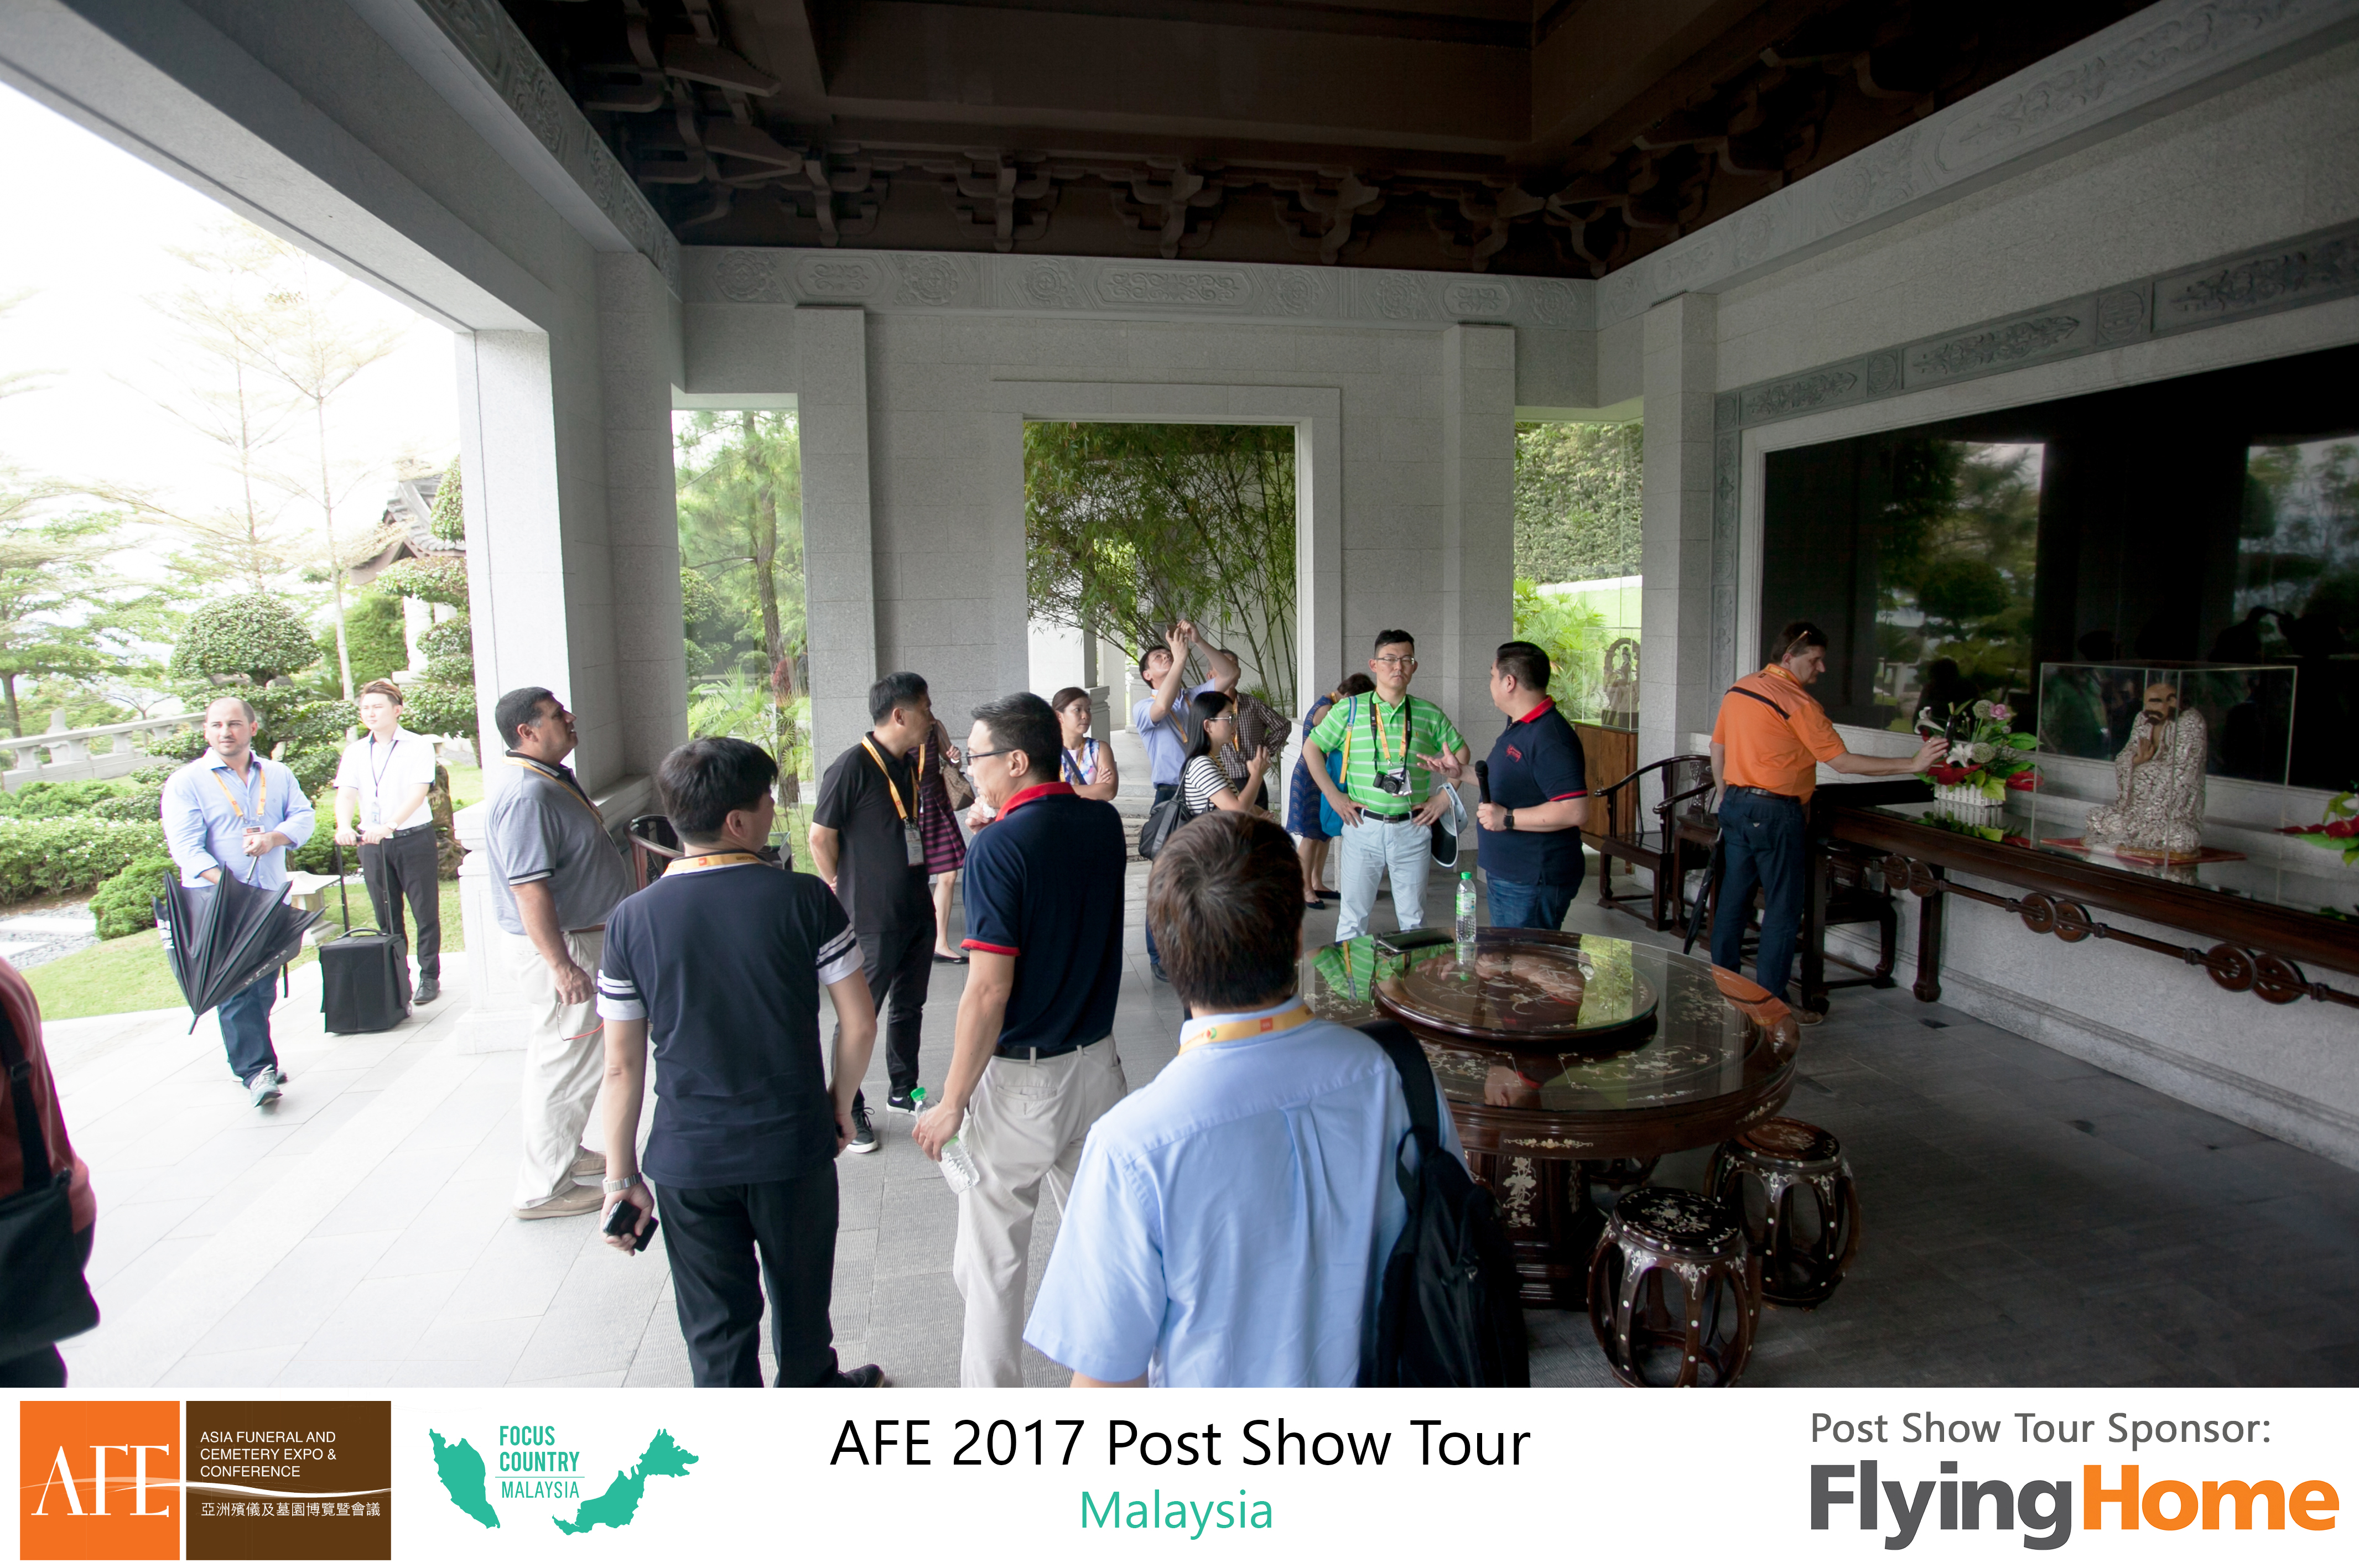 AFE Post Show Tour 2017 Day 2 - 65